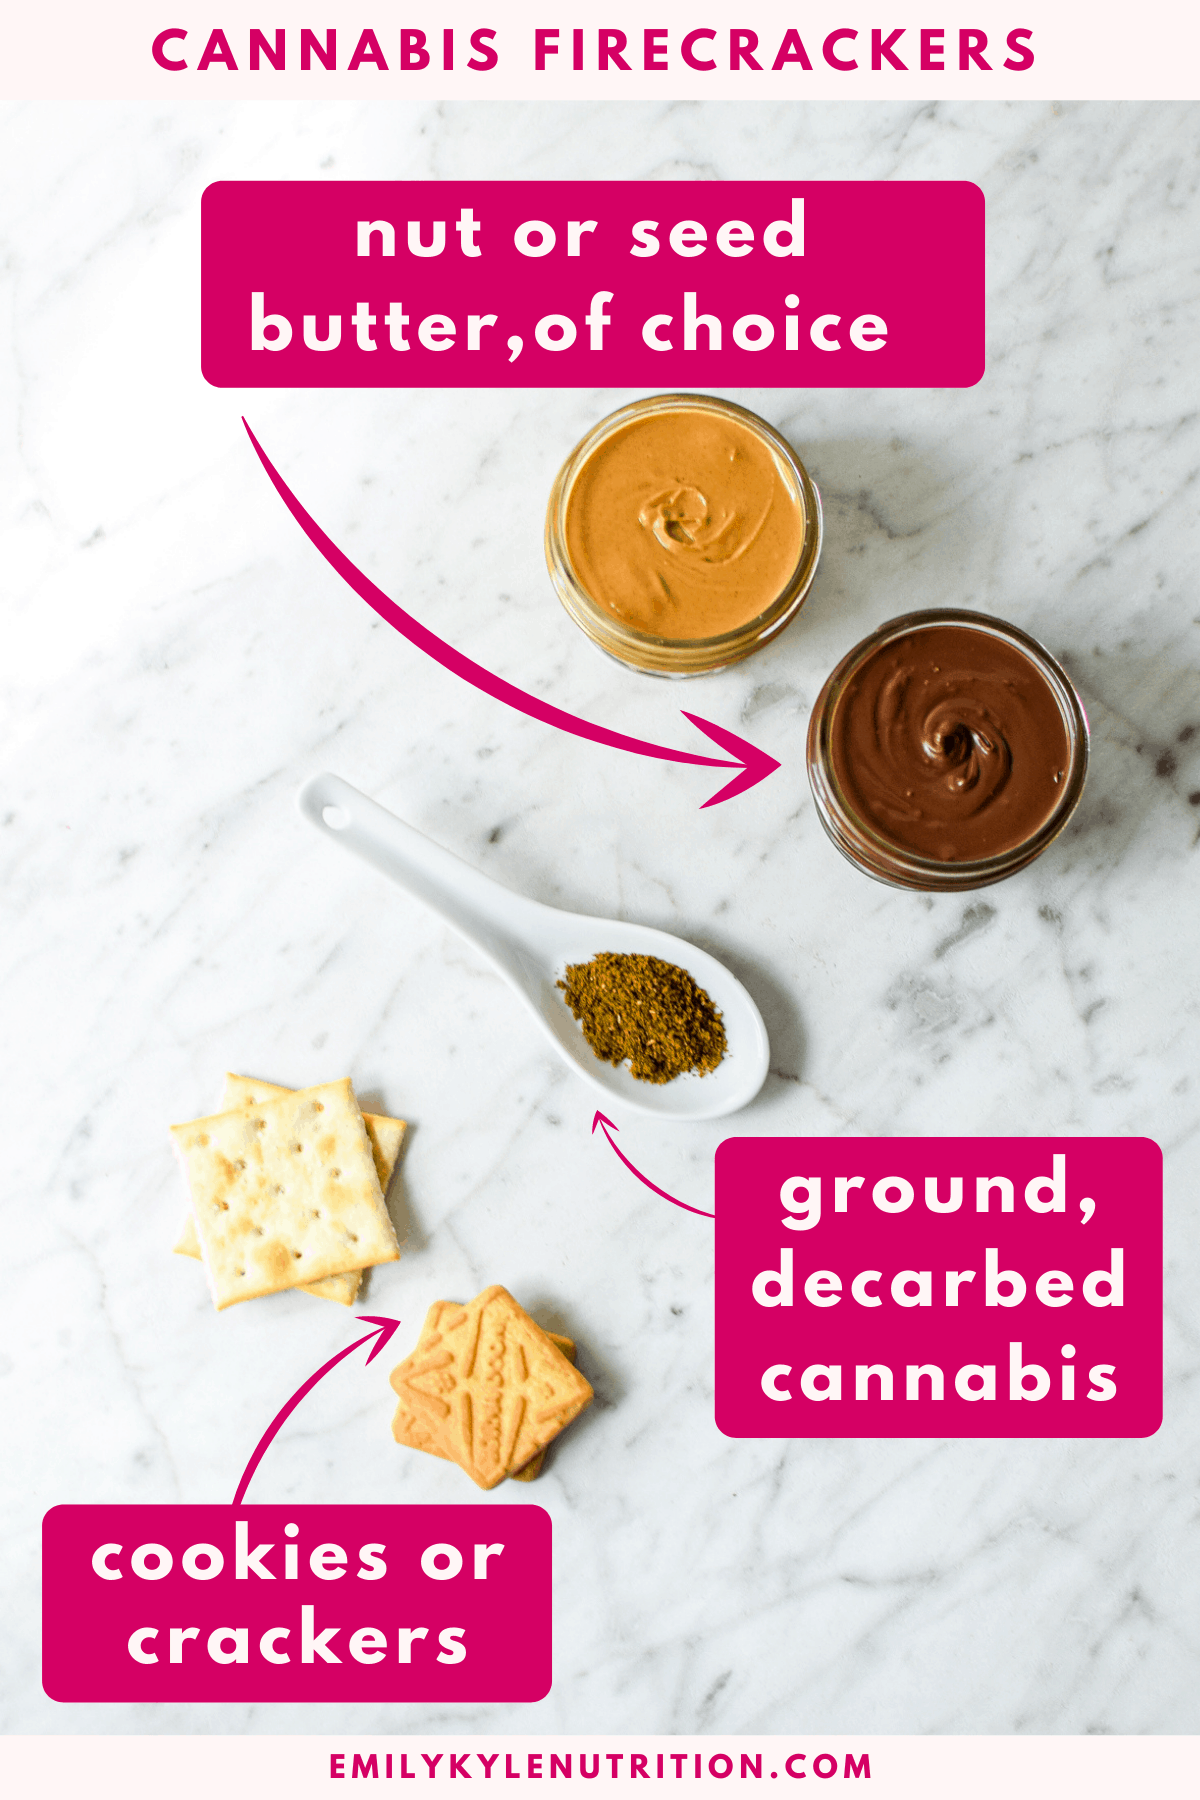 Ingredients collage for making cannabis firecrackers including nut butter, crackers, and decarbed cannabis